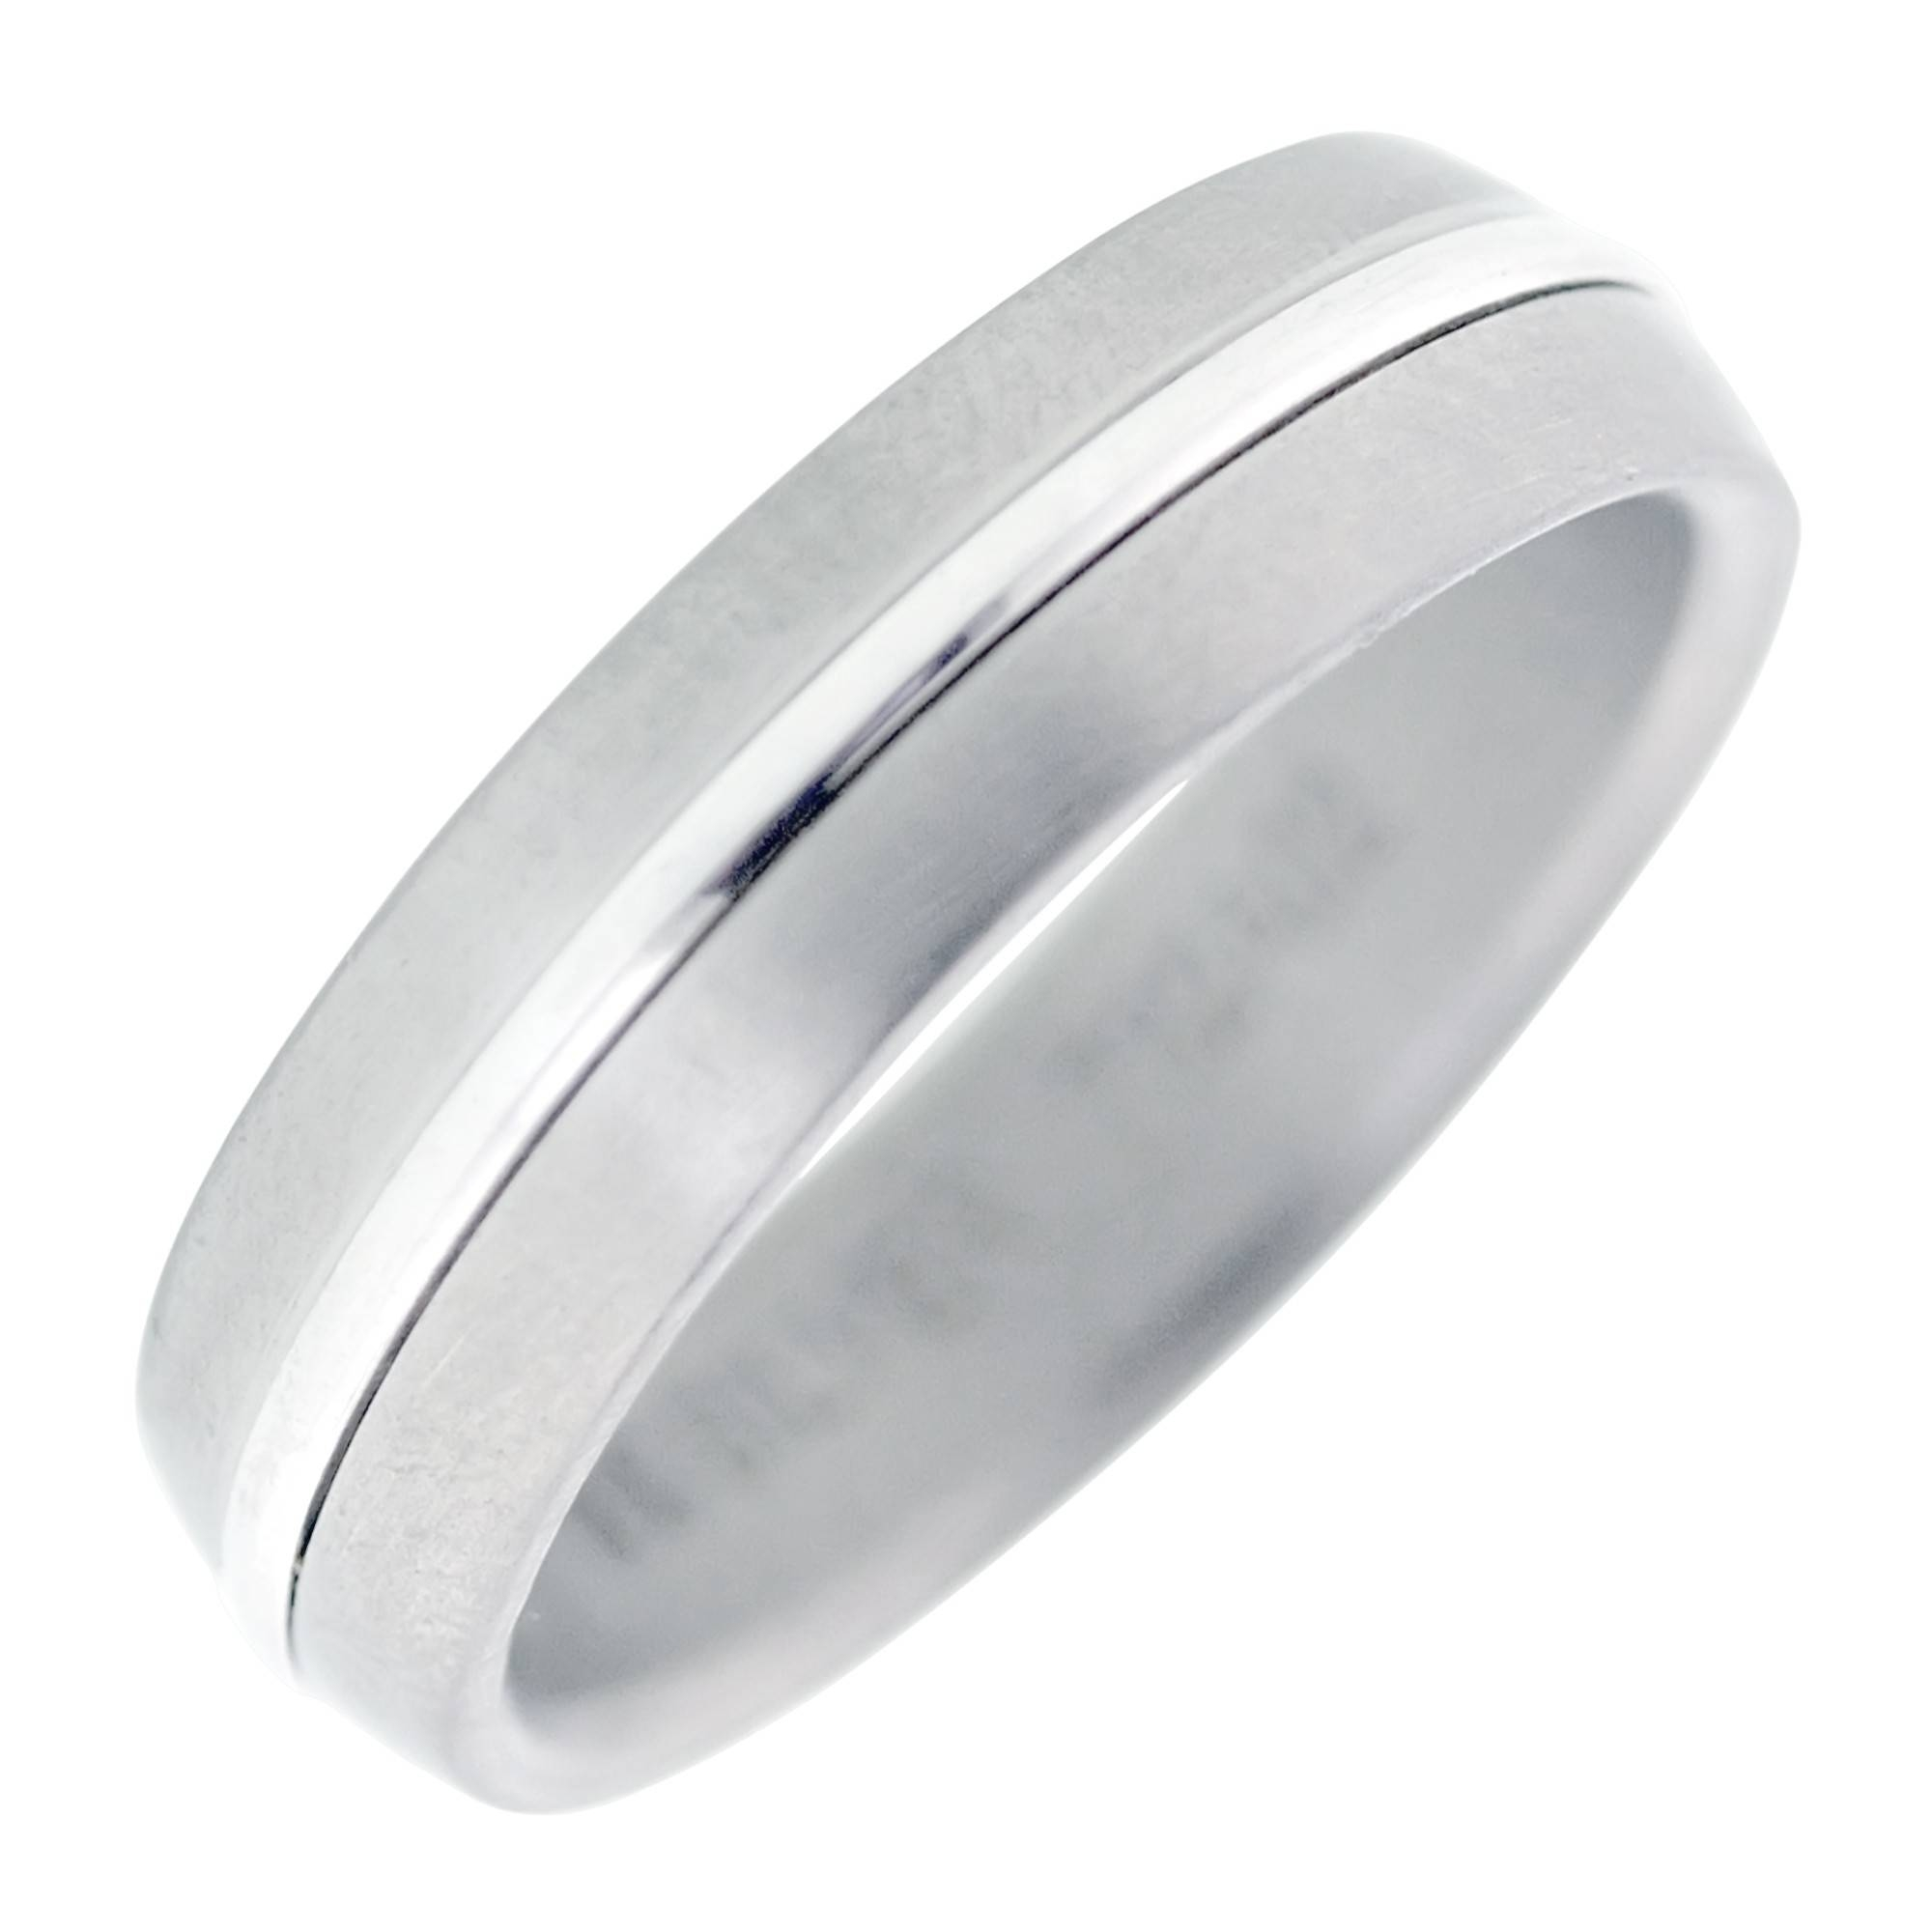 Dora Mens Wedding Band In Titanium And 14Kt White Gold (6Mm) Pertaining To Dora Mens Wedding Bands (View 3 of 15)